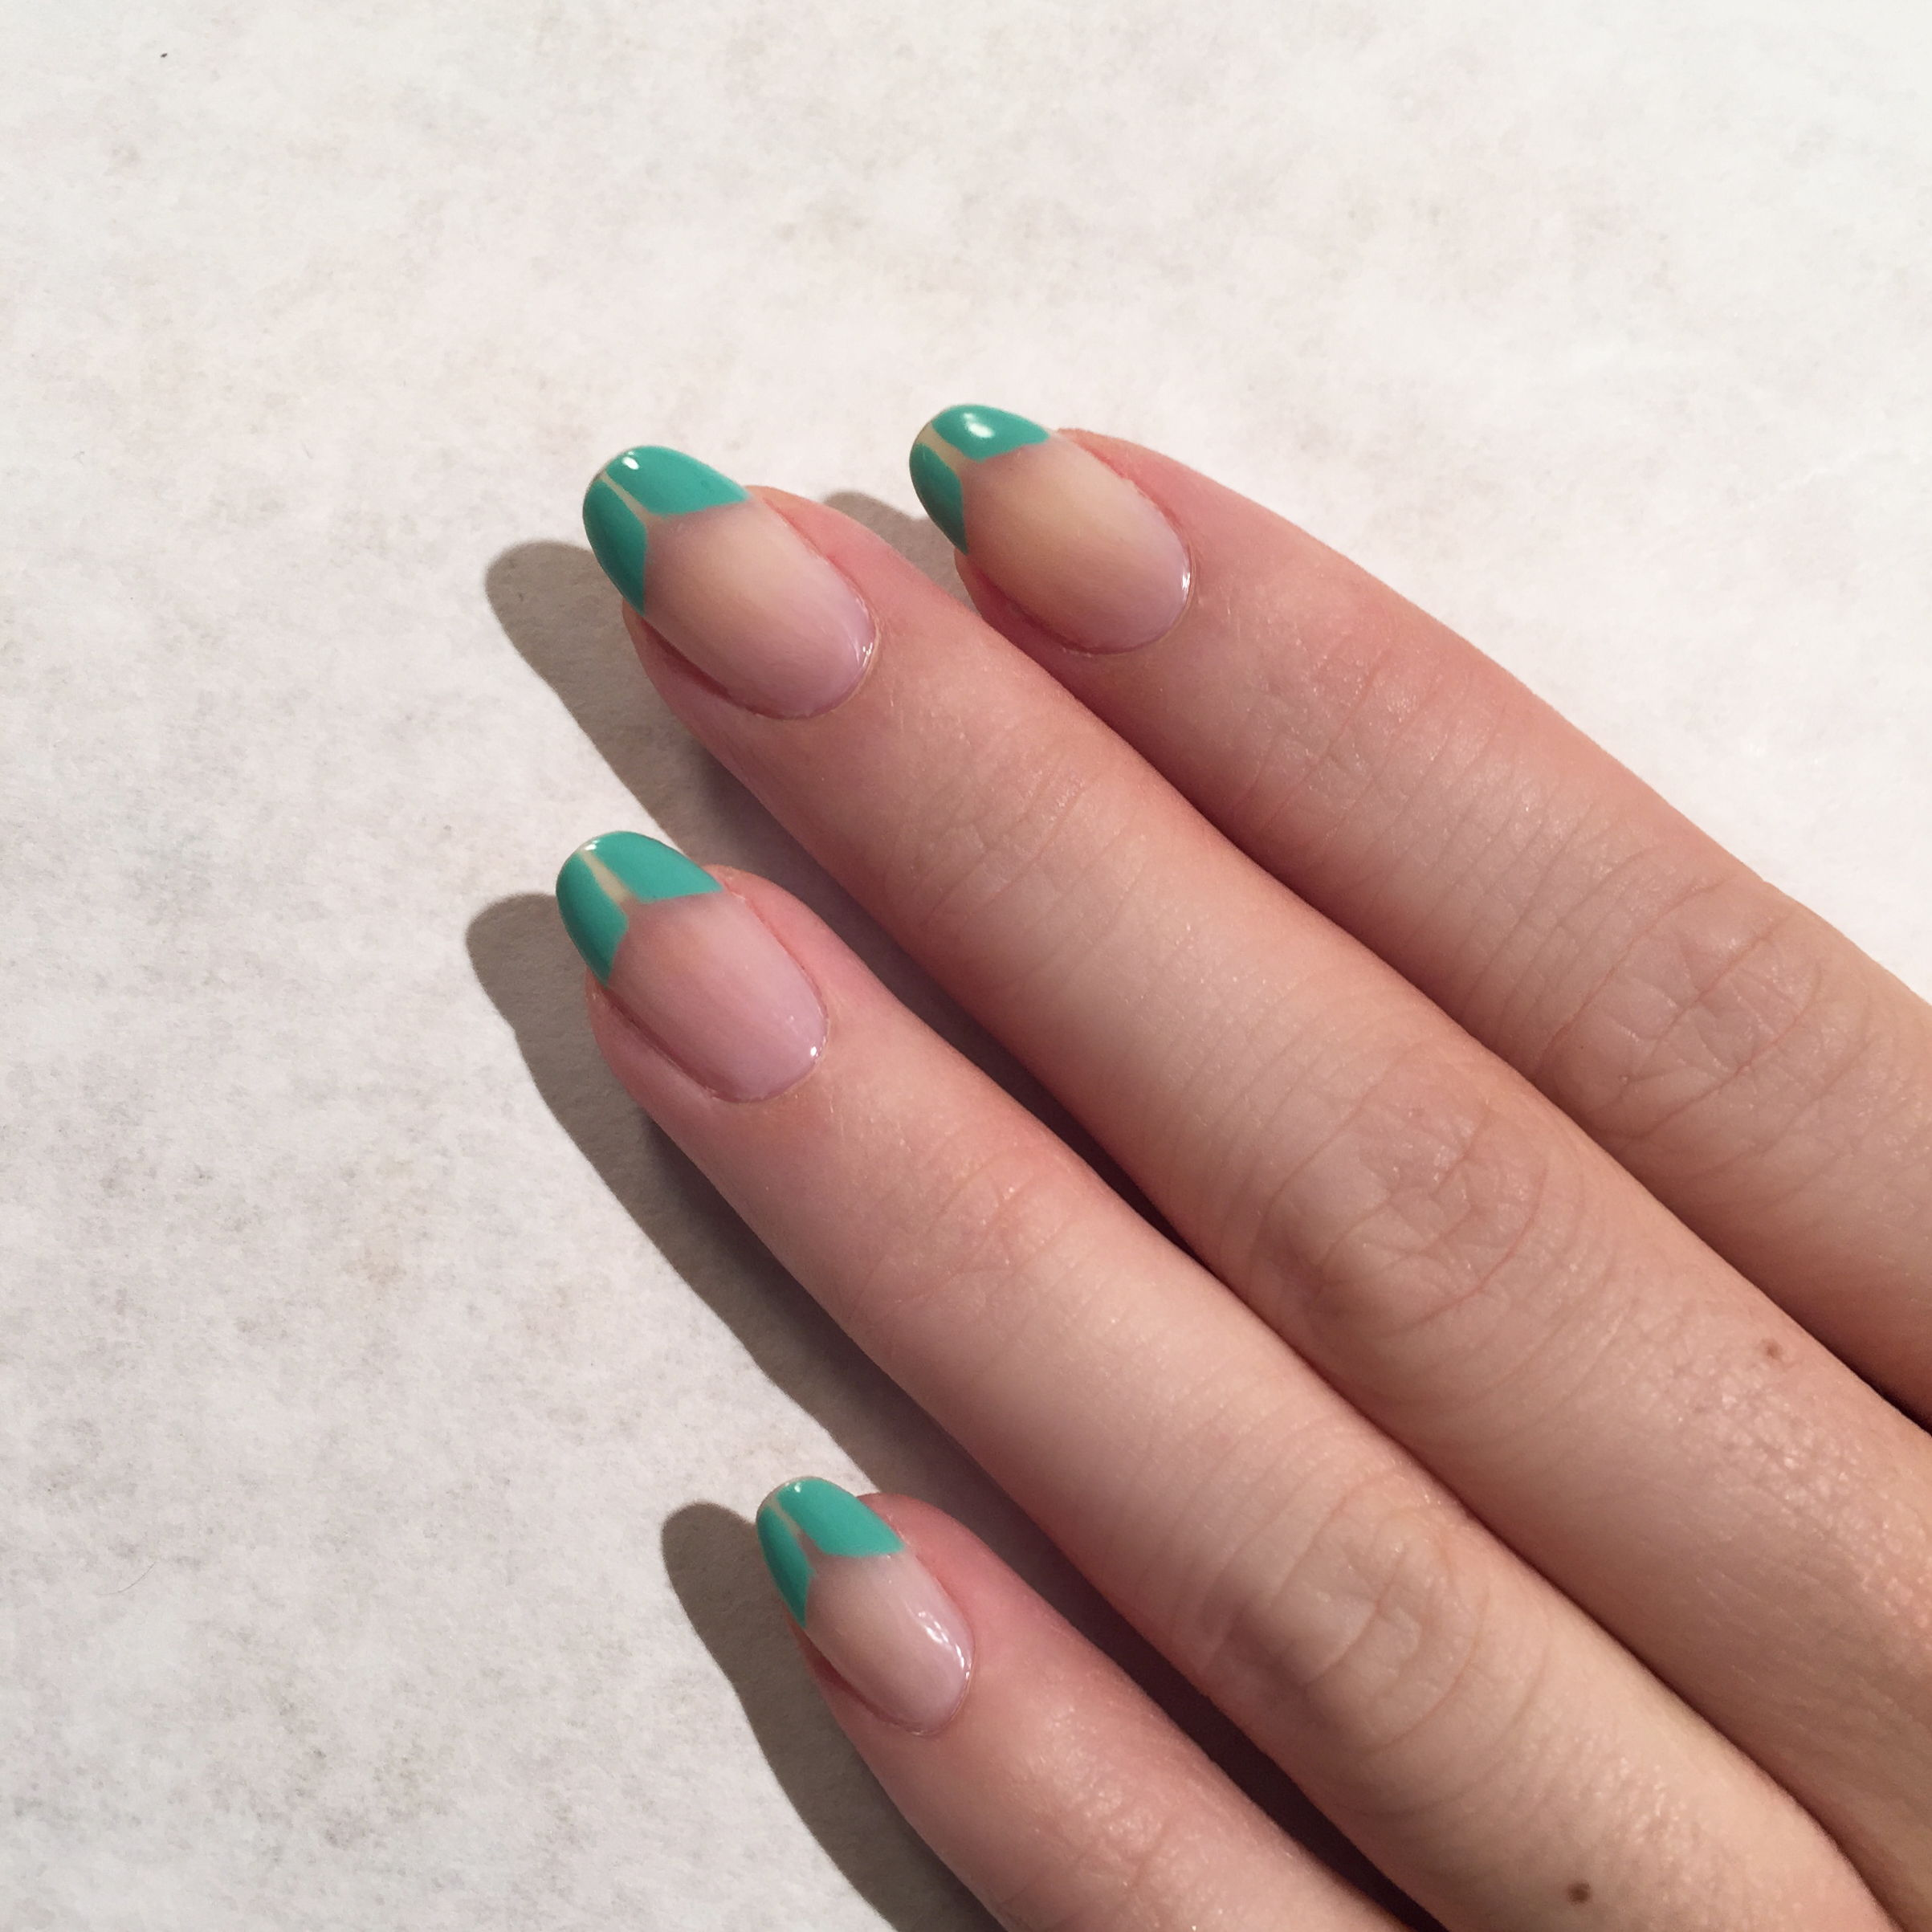 tibi runway nails